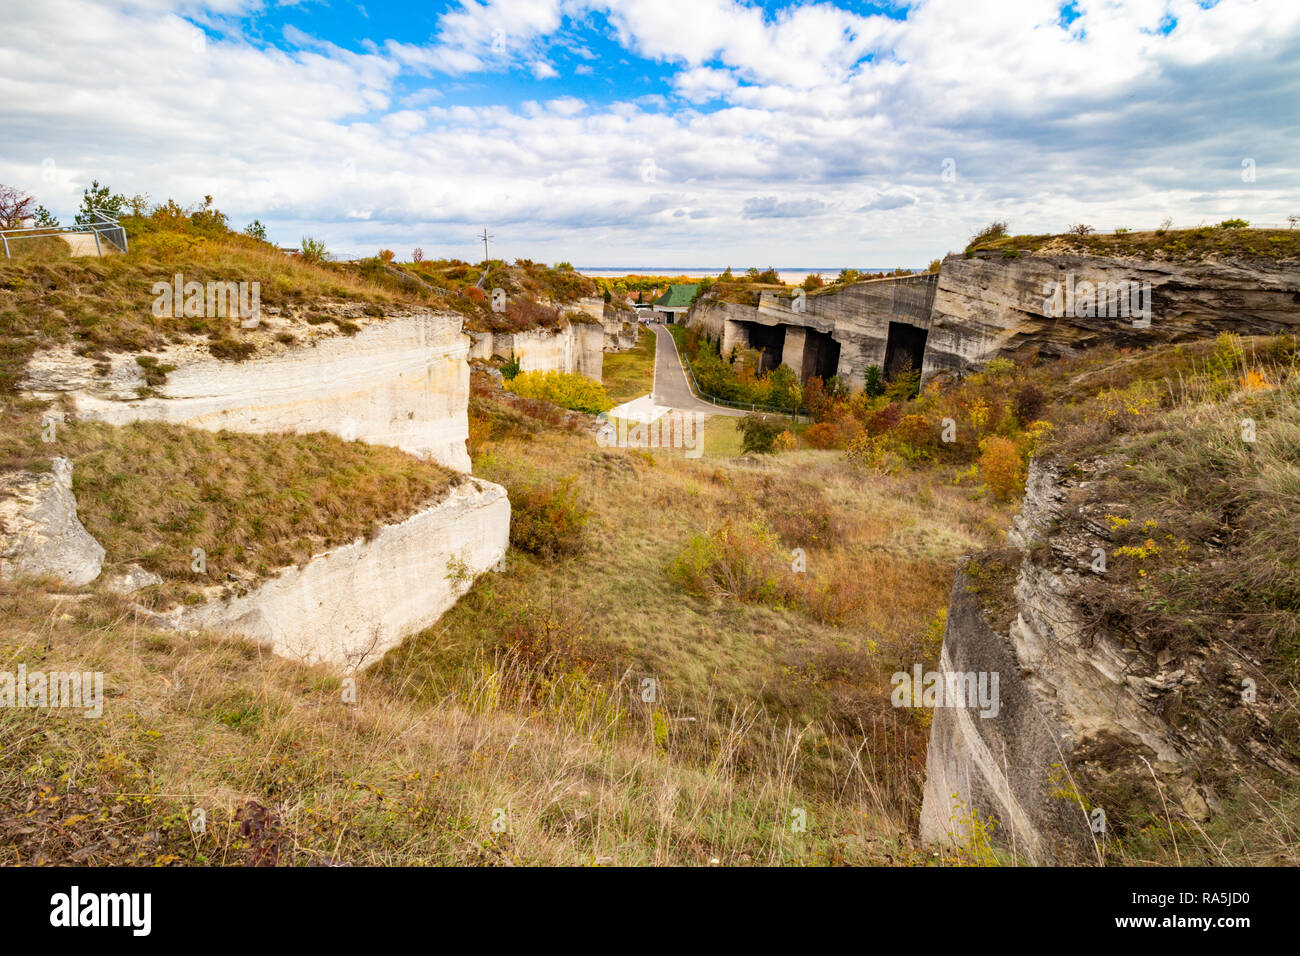 Limestone Mine Stock Photos & Limestone Mine Stock Images